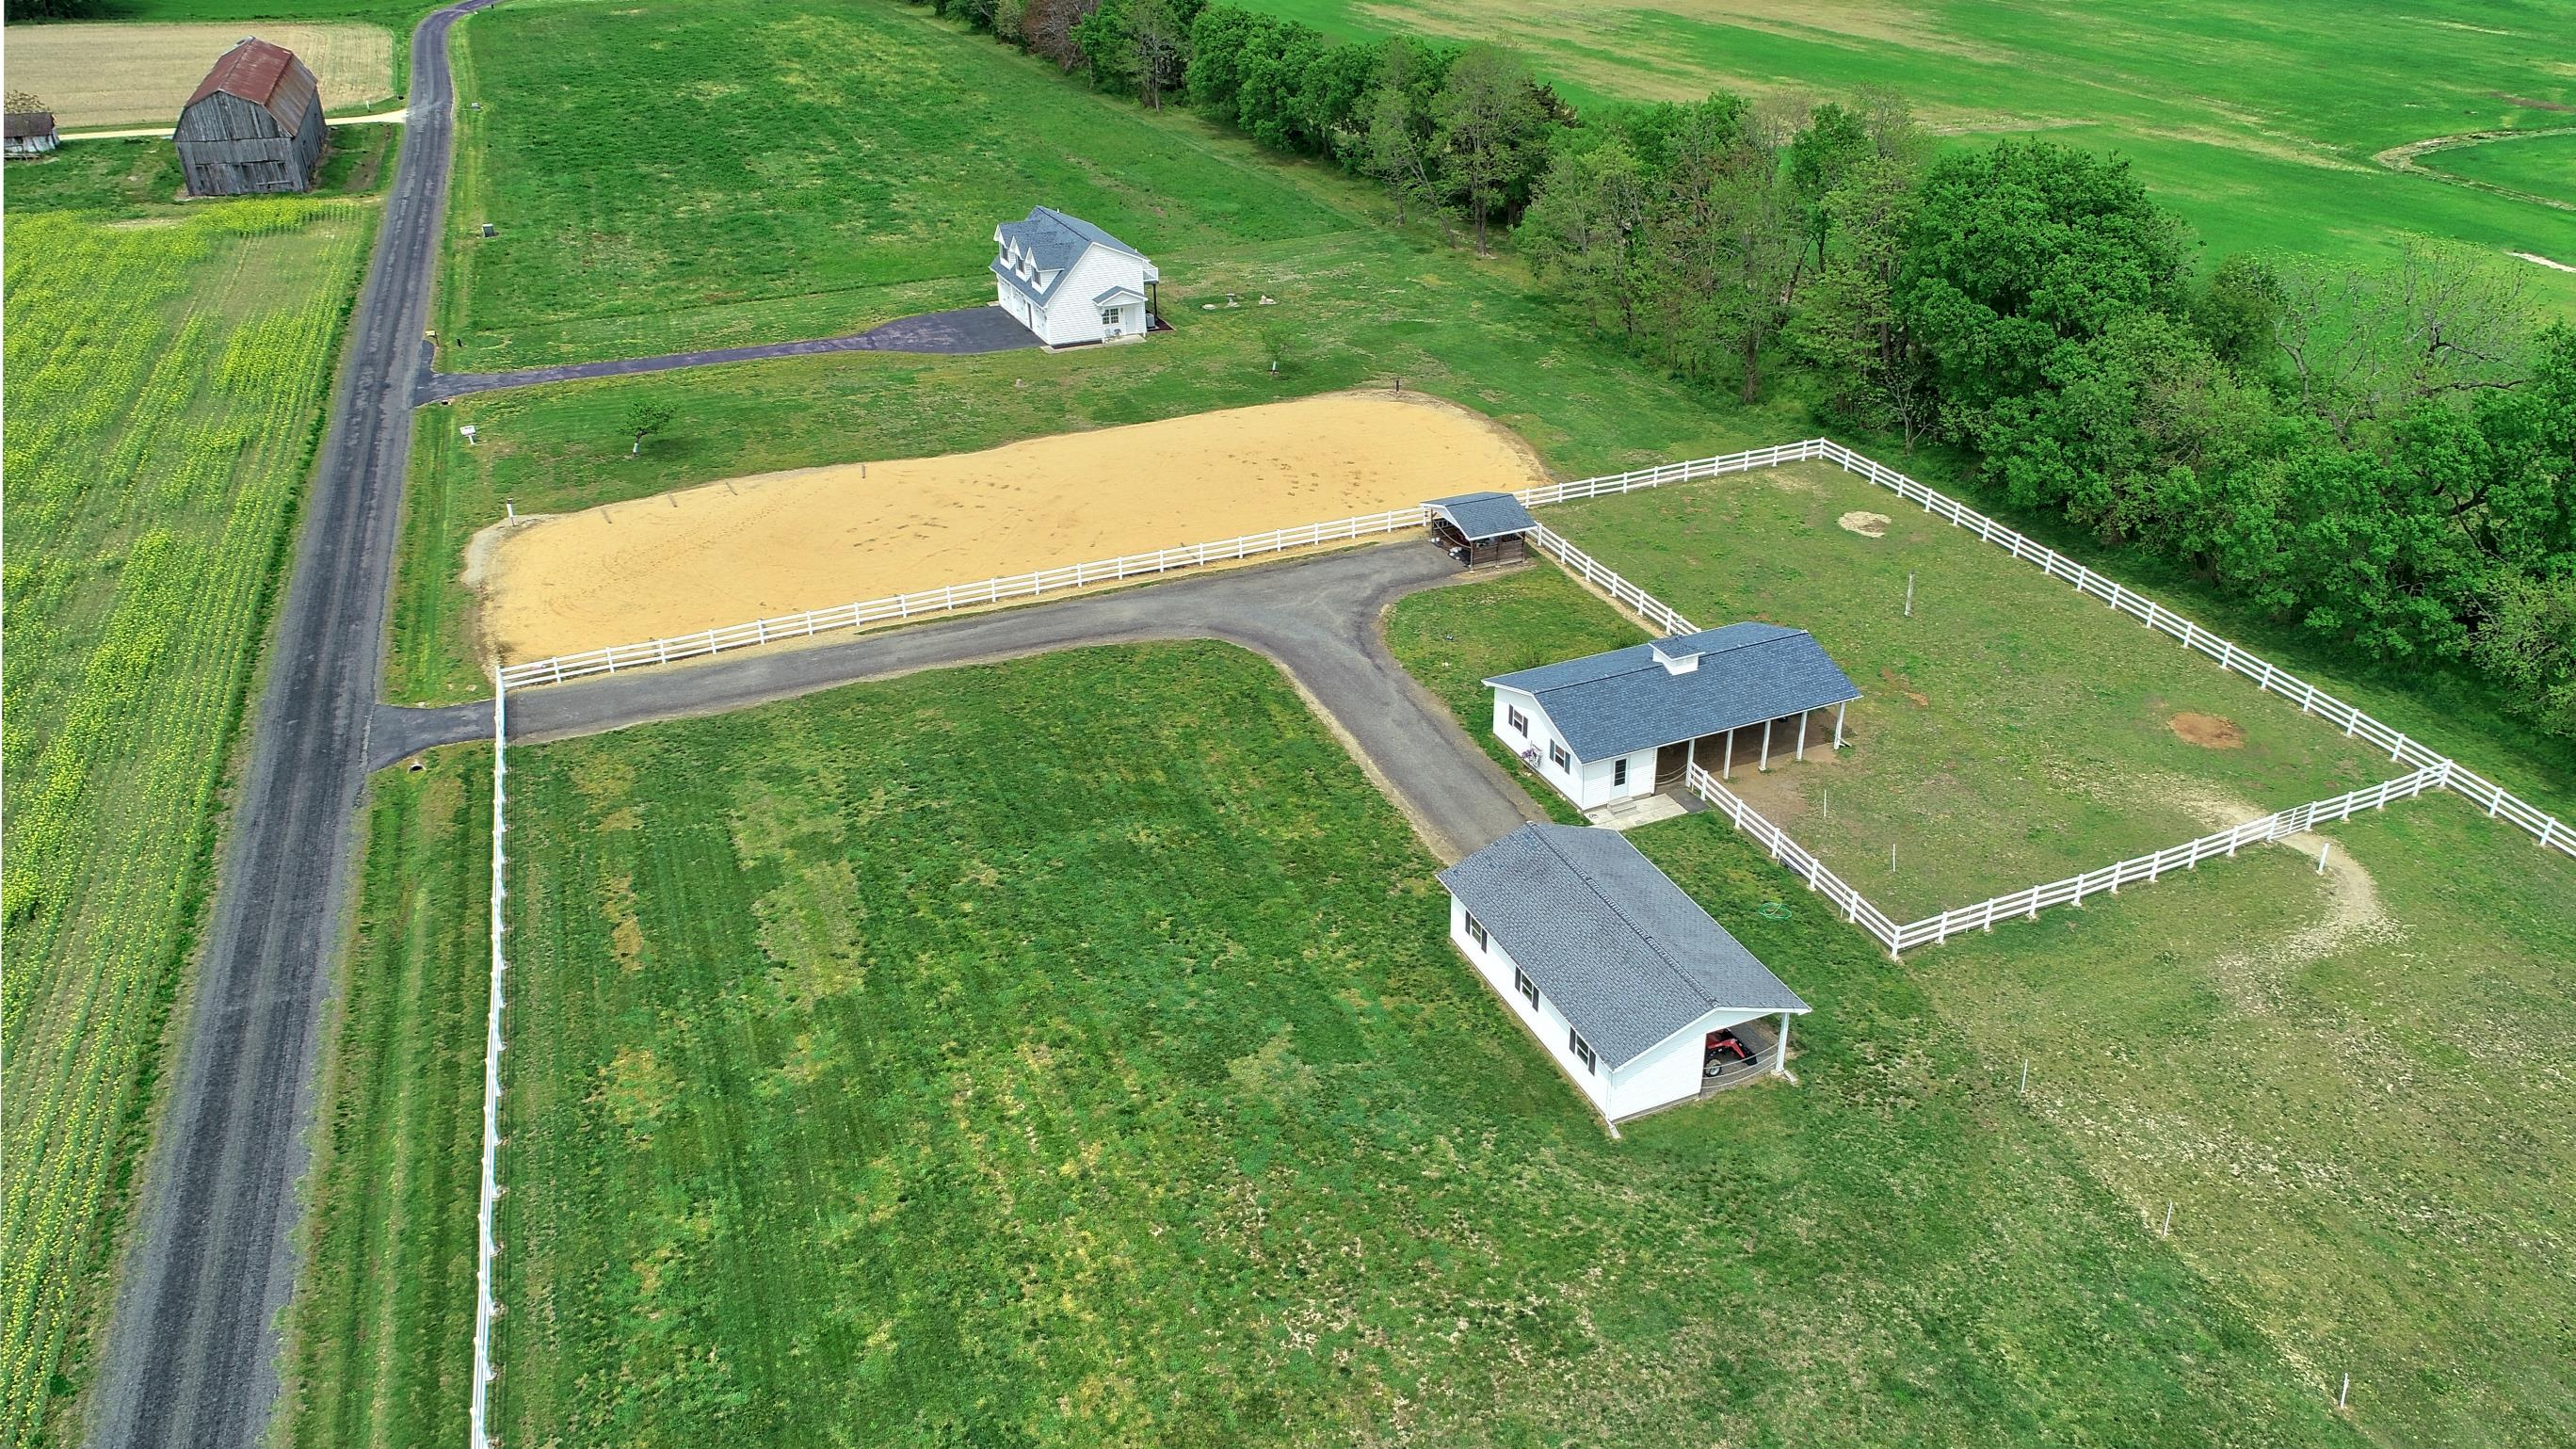 21581 Montfort Road in Bushwood MD offers horse facilities including a horse barn, ring, fenced pastures and More!  This Southern Maryland Horse Farm is a waterfront home in Saint Marys County! Call Marie Lally, Your Southern Maryland Realtor!